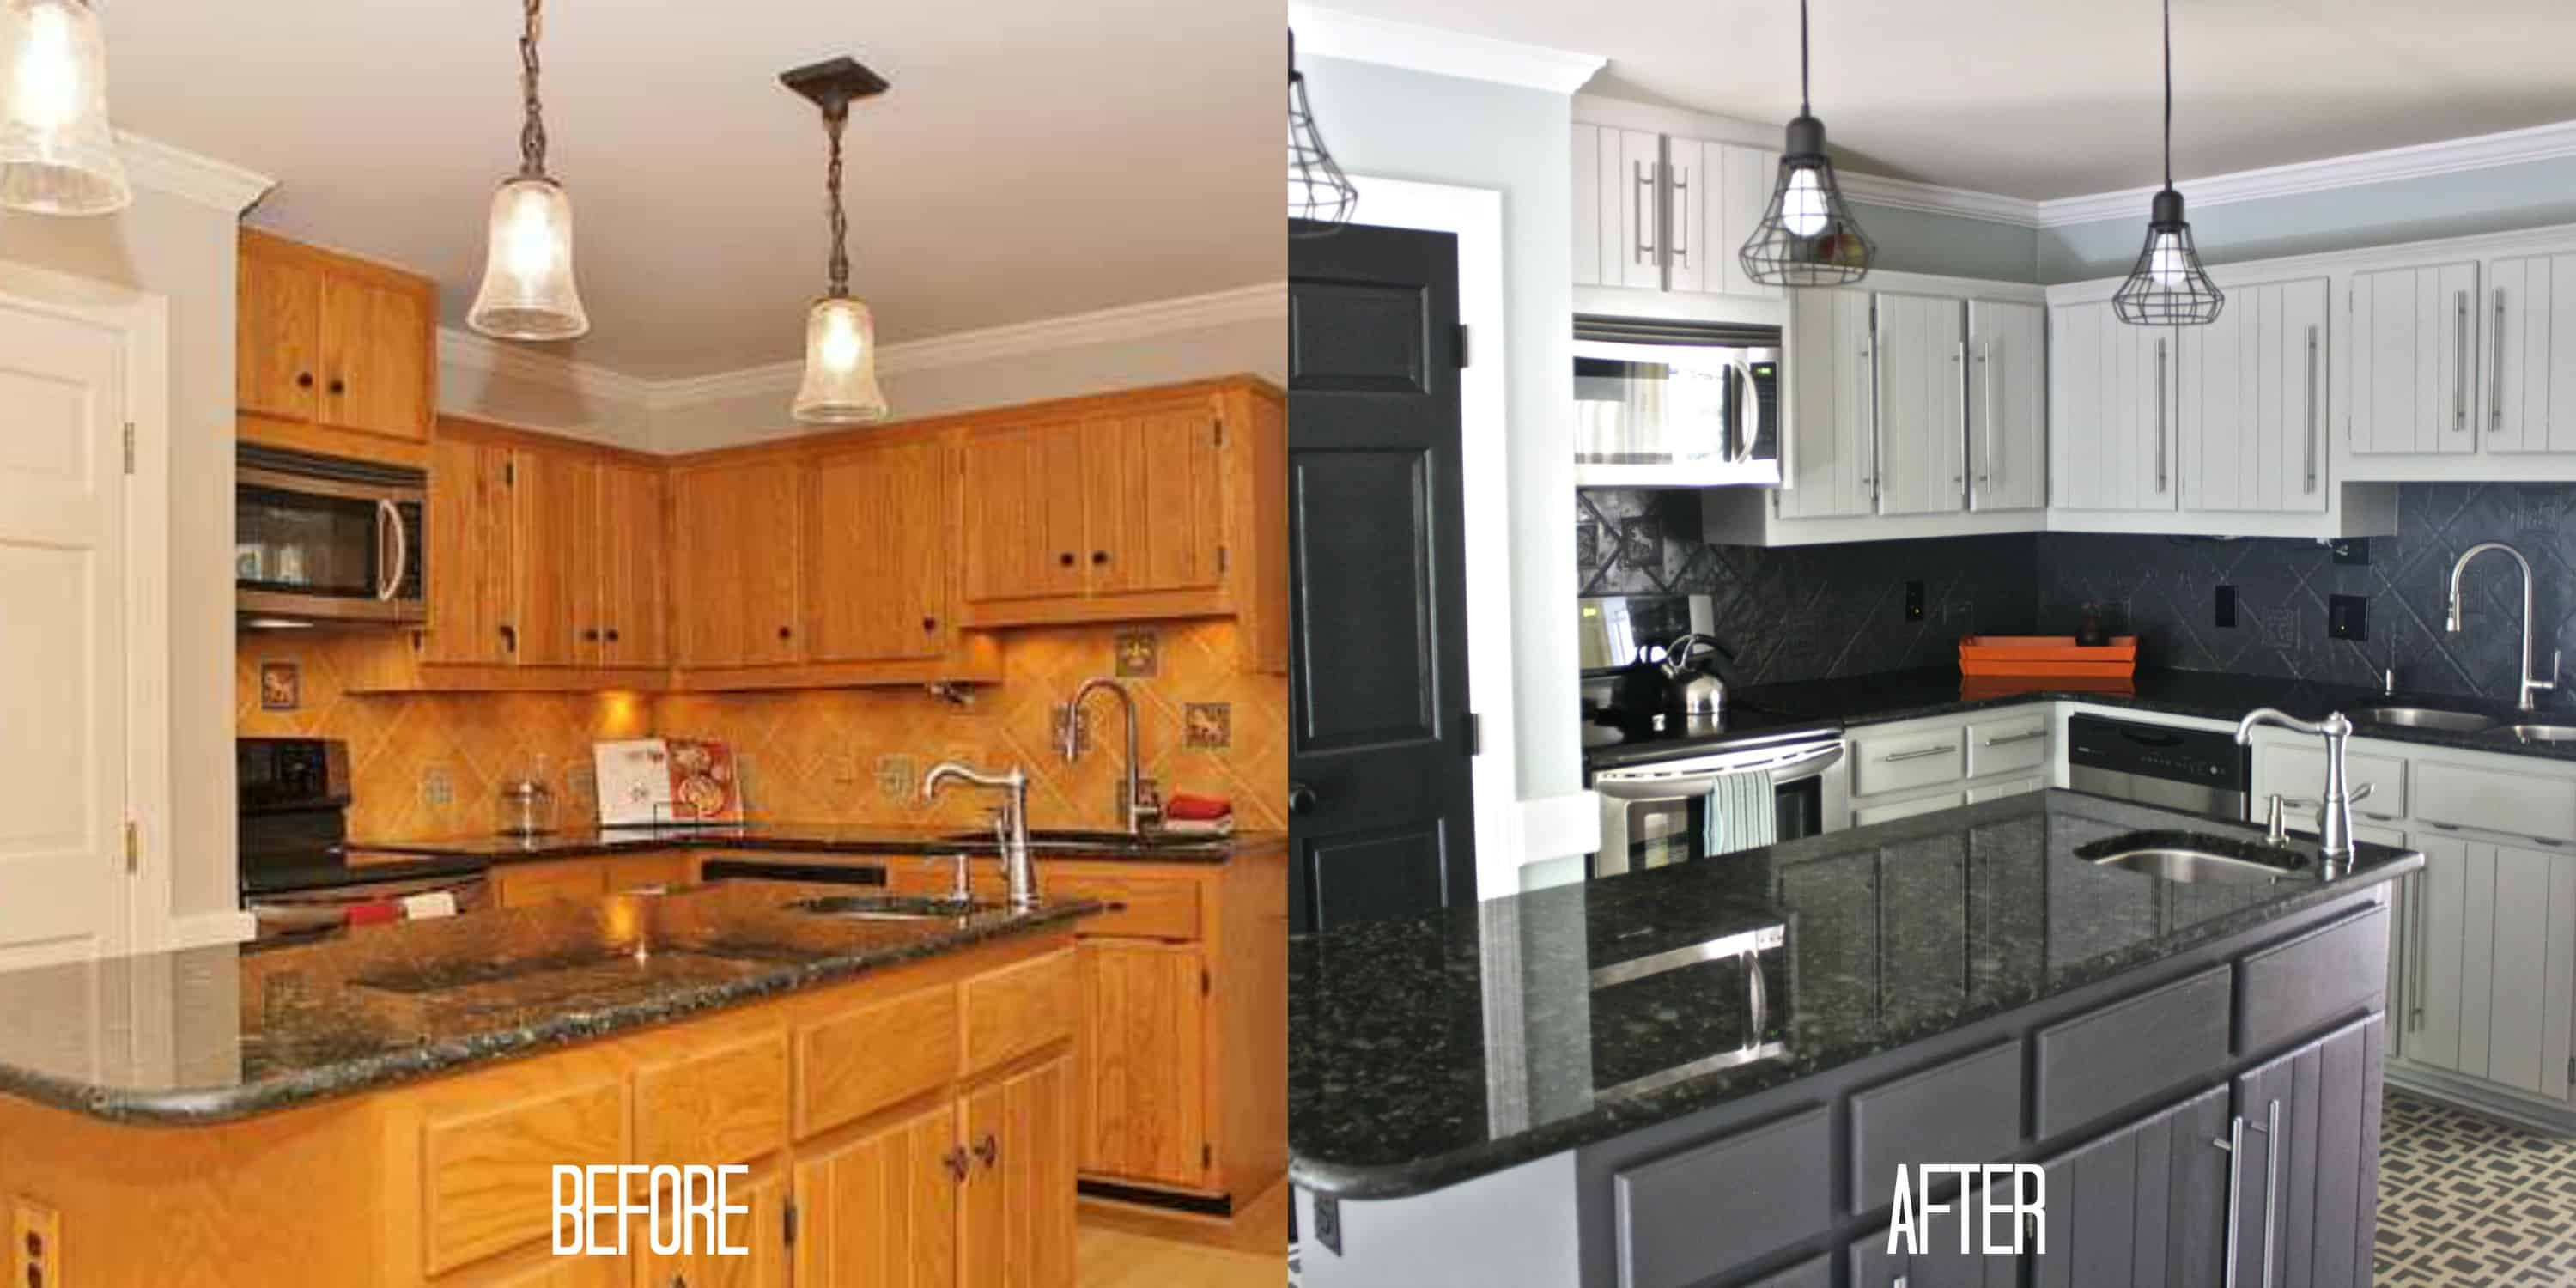 Diy kitchen cabinets gauteng - Diy Advice Renovating Your Kitchen Cupboards